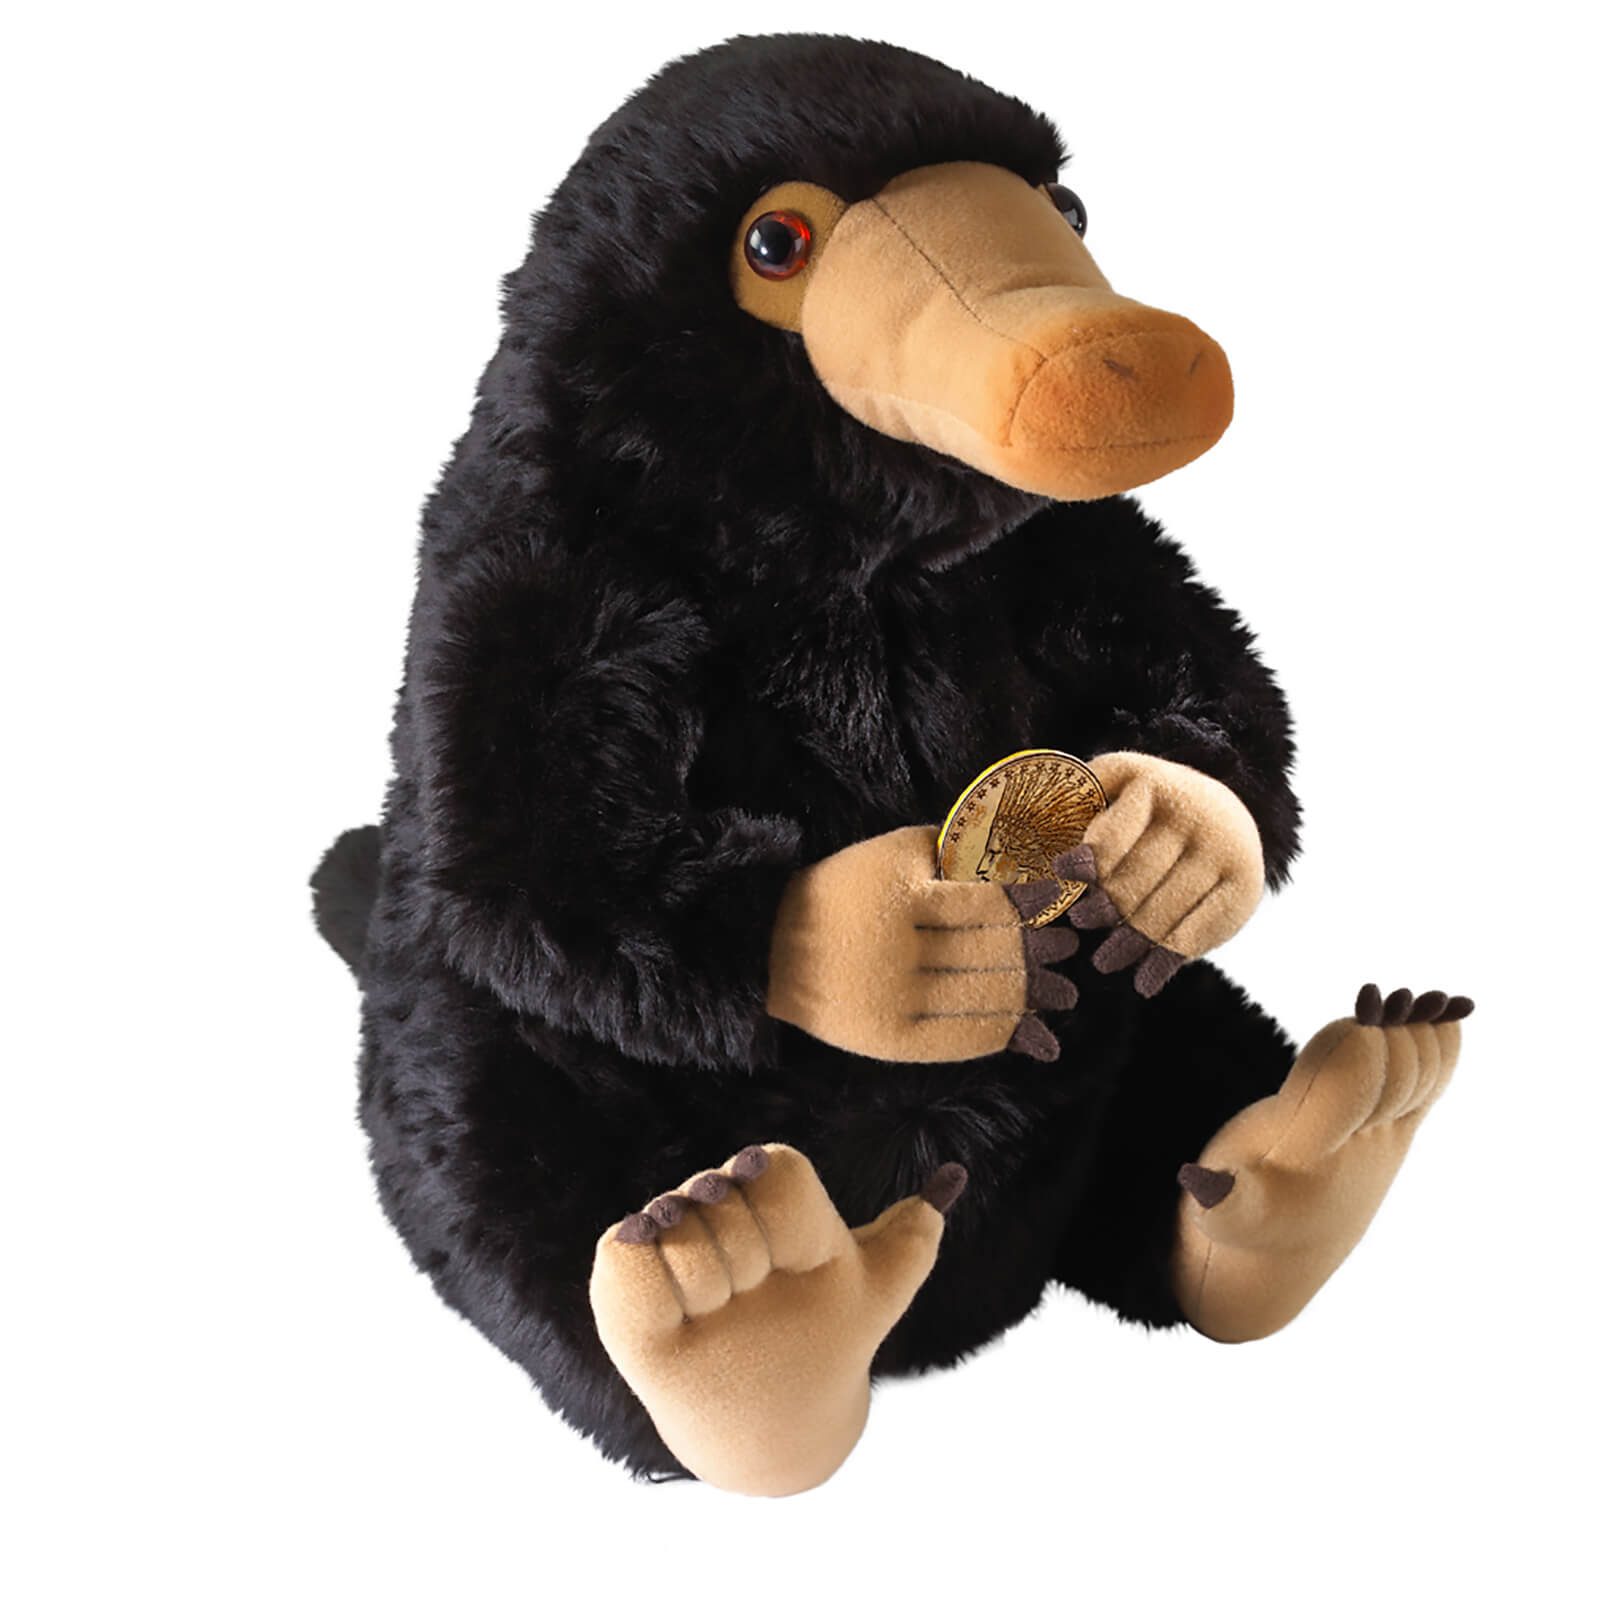 Image of Fantastic Beasts and Where to Find Them Niffler Collector's 13 Inch Plush